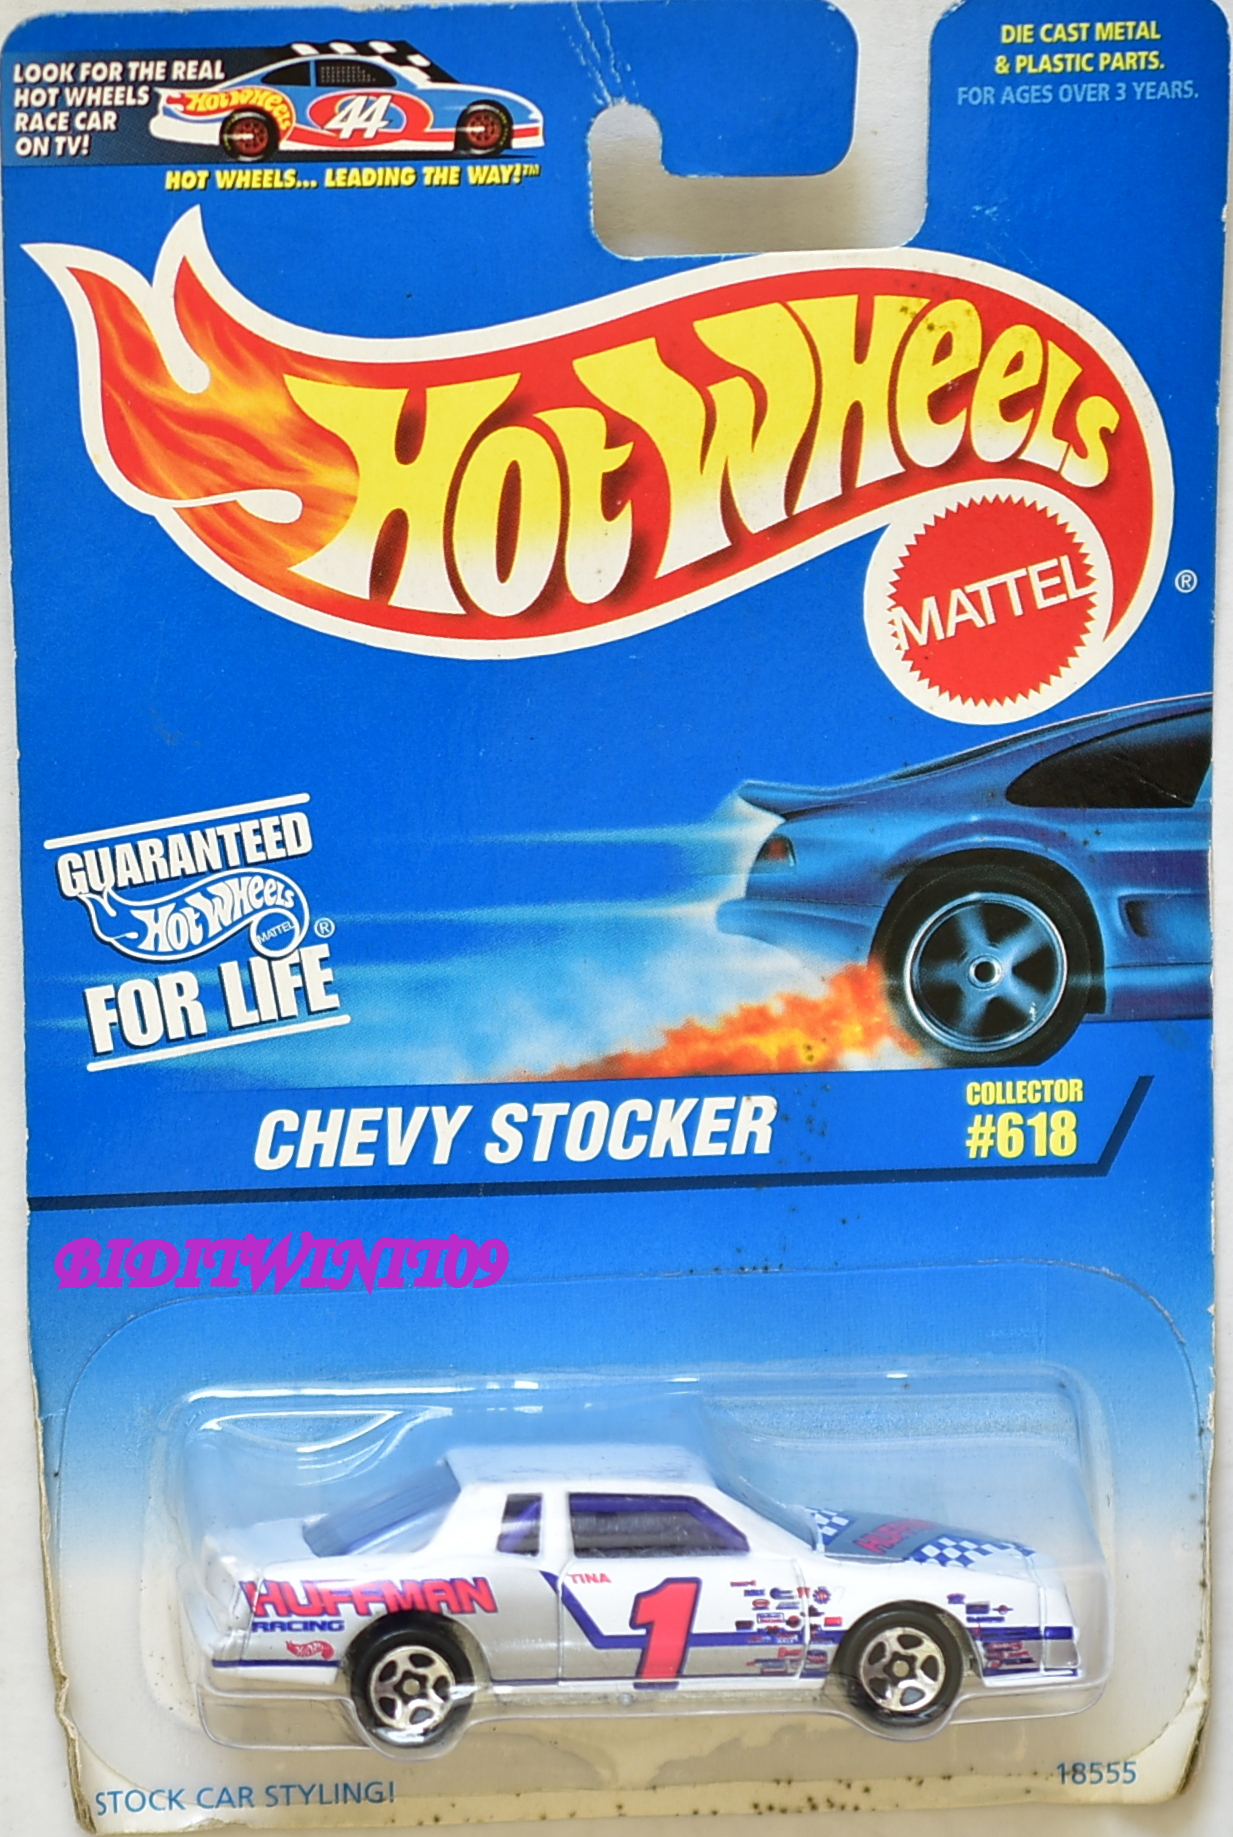 HOT WHEELS 1997 CHEVY STOCKER #618 WHITE BAD CARD